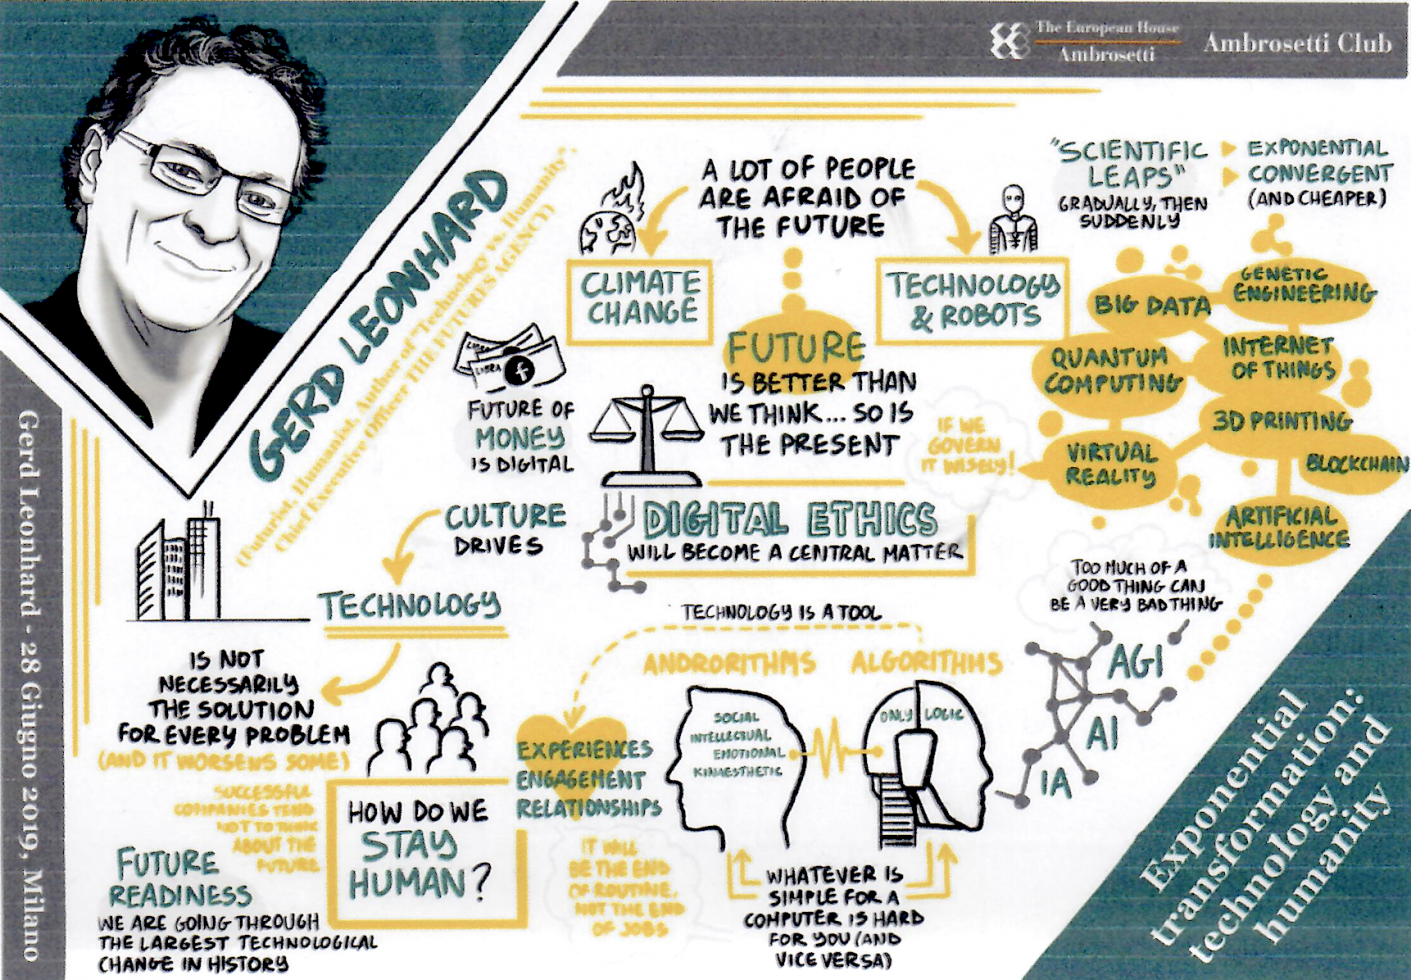 Translations Into Italian: A Nice Graphic Summary Of My Presentation At Ambrosetti